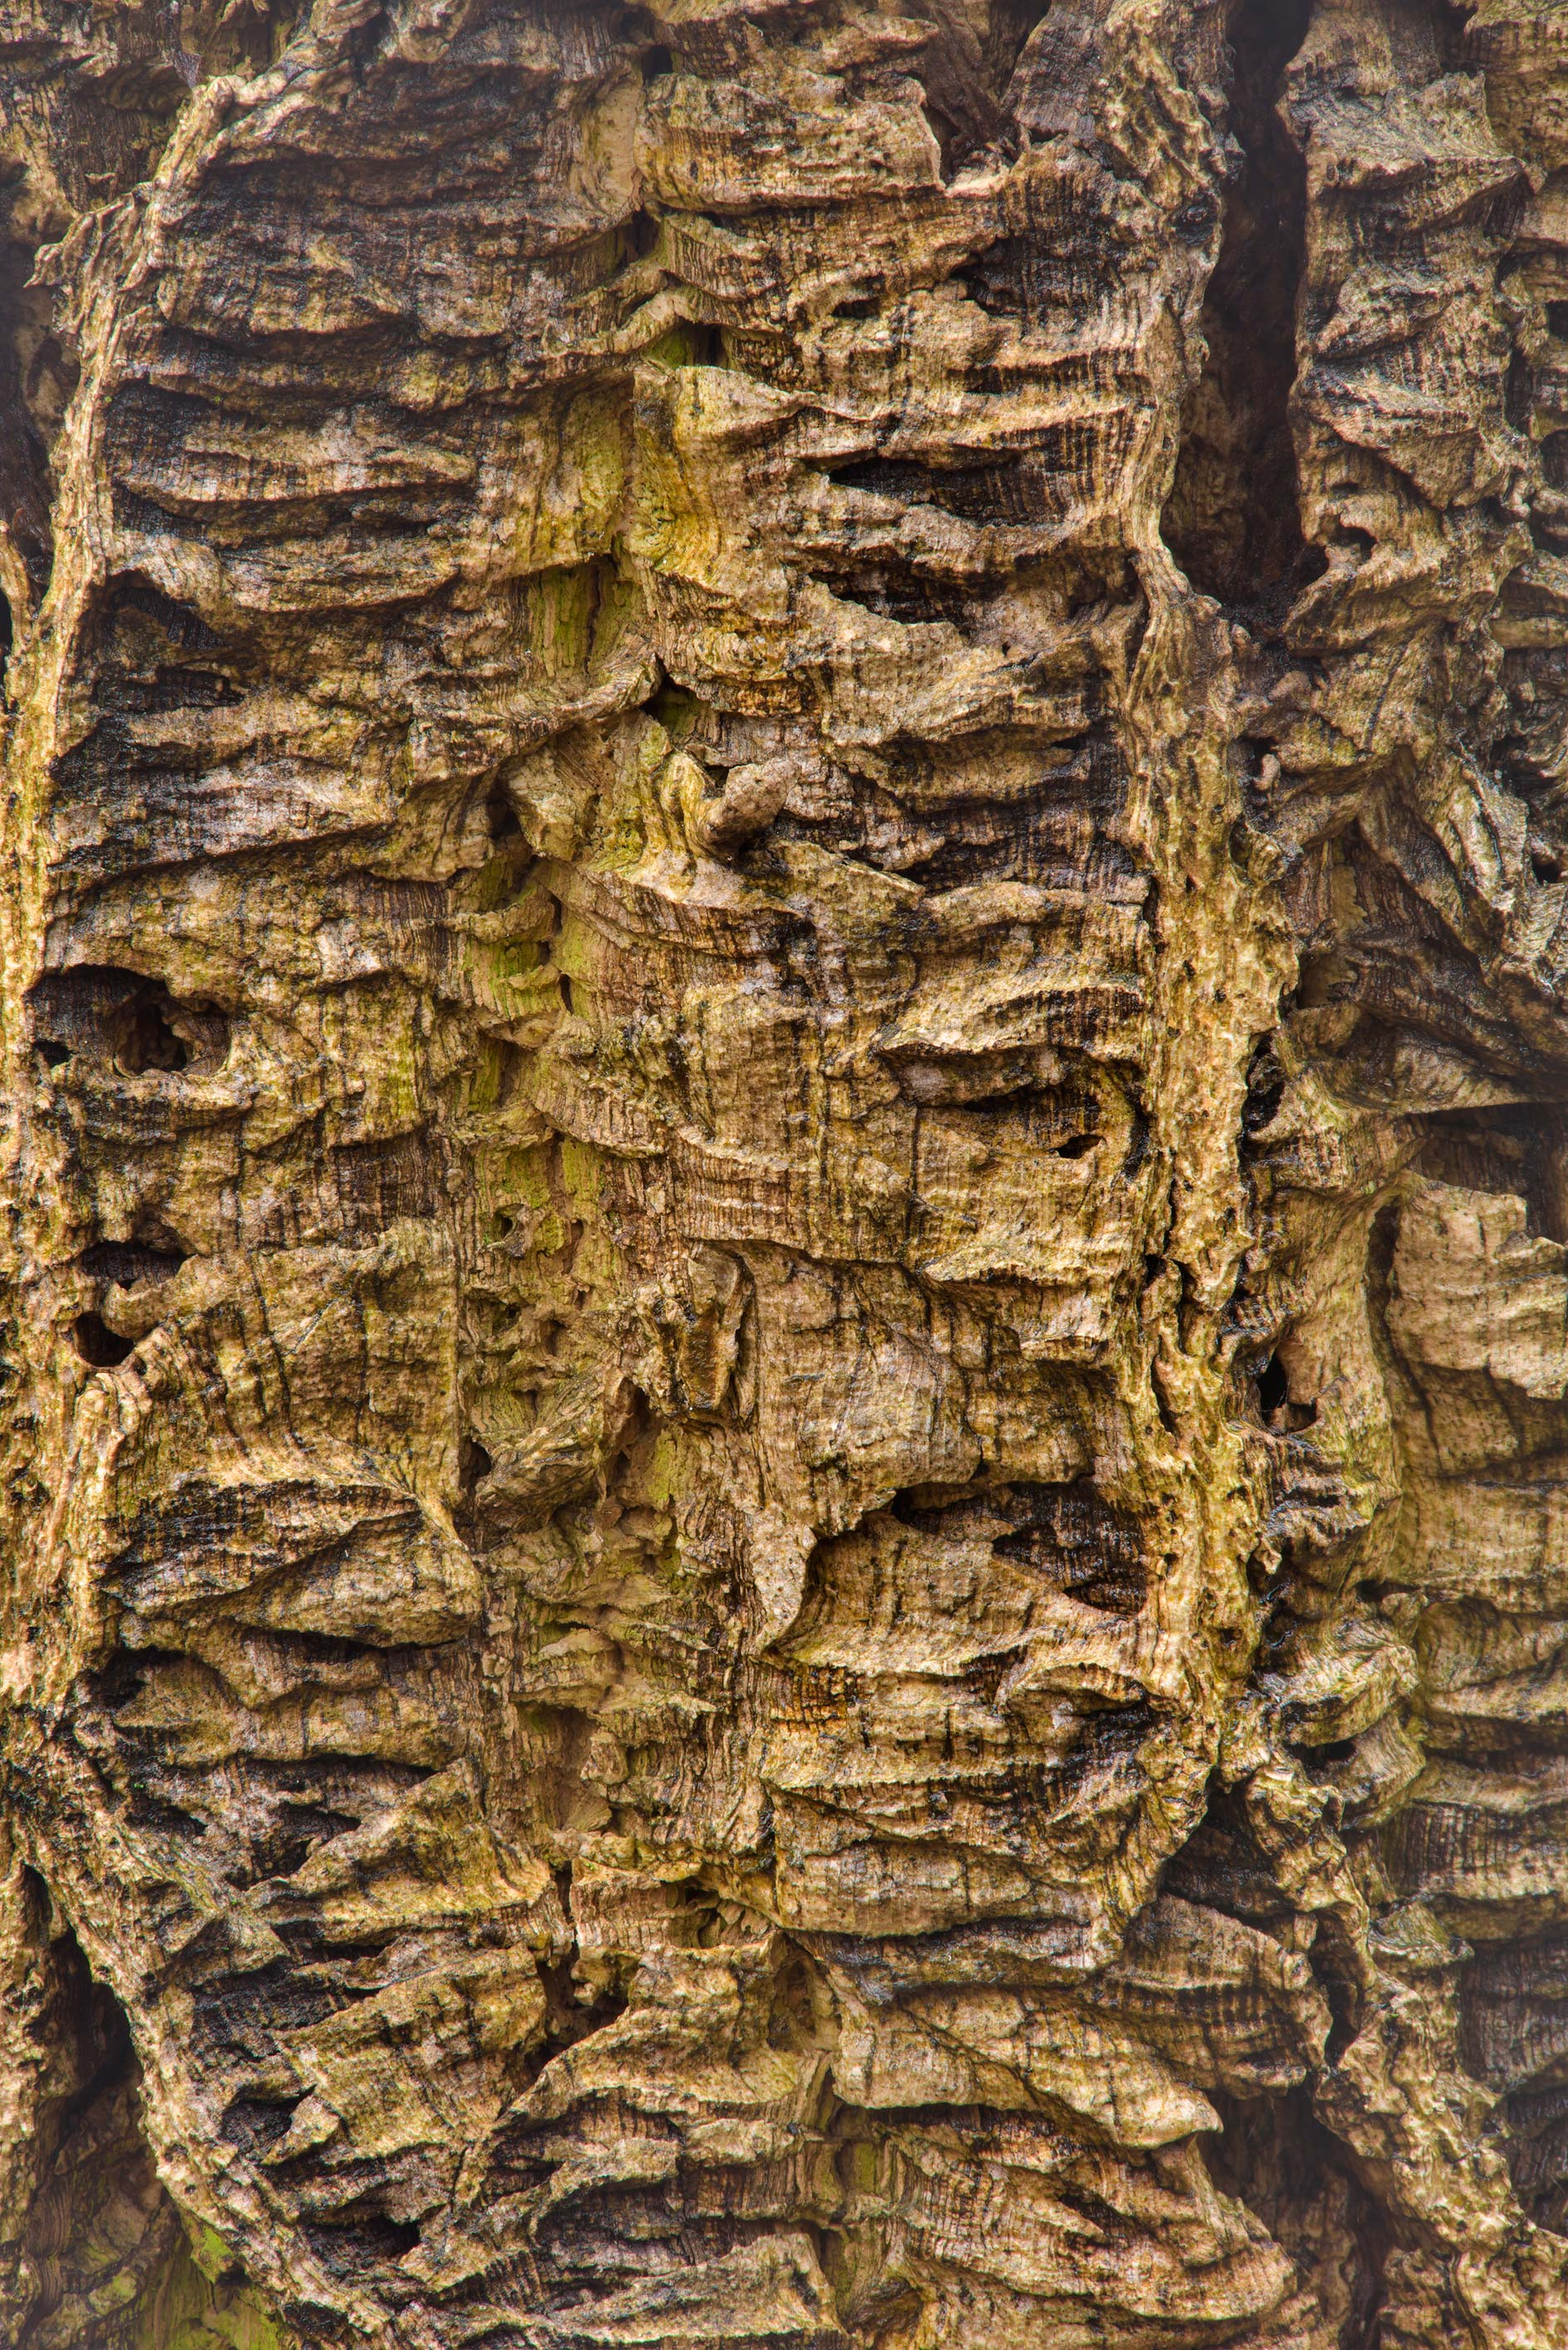 Corky bark of a tree in Botanic Gardens of...Institute. St.Petersburg, Russia